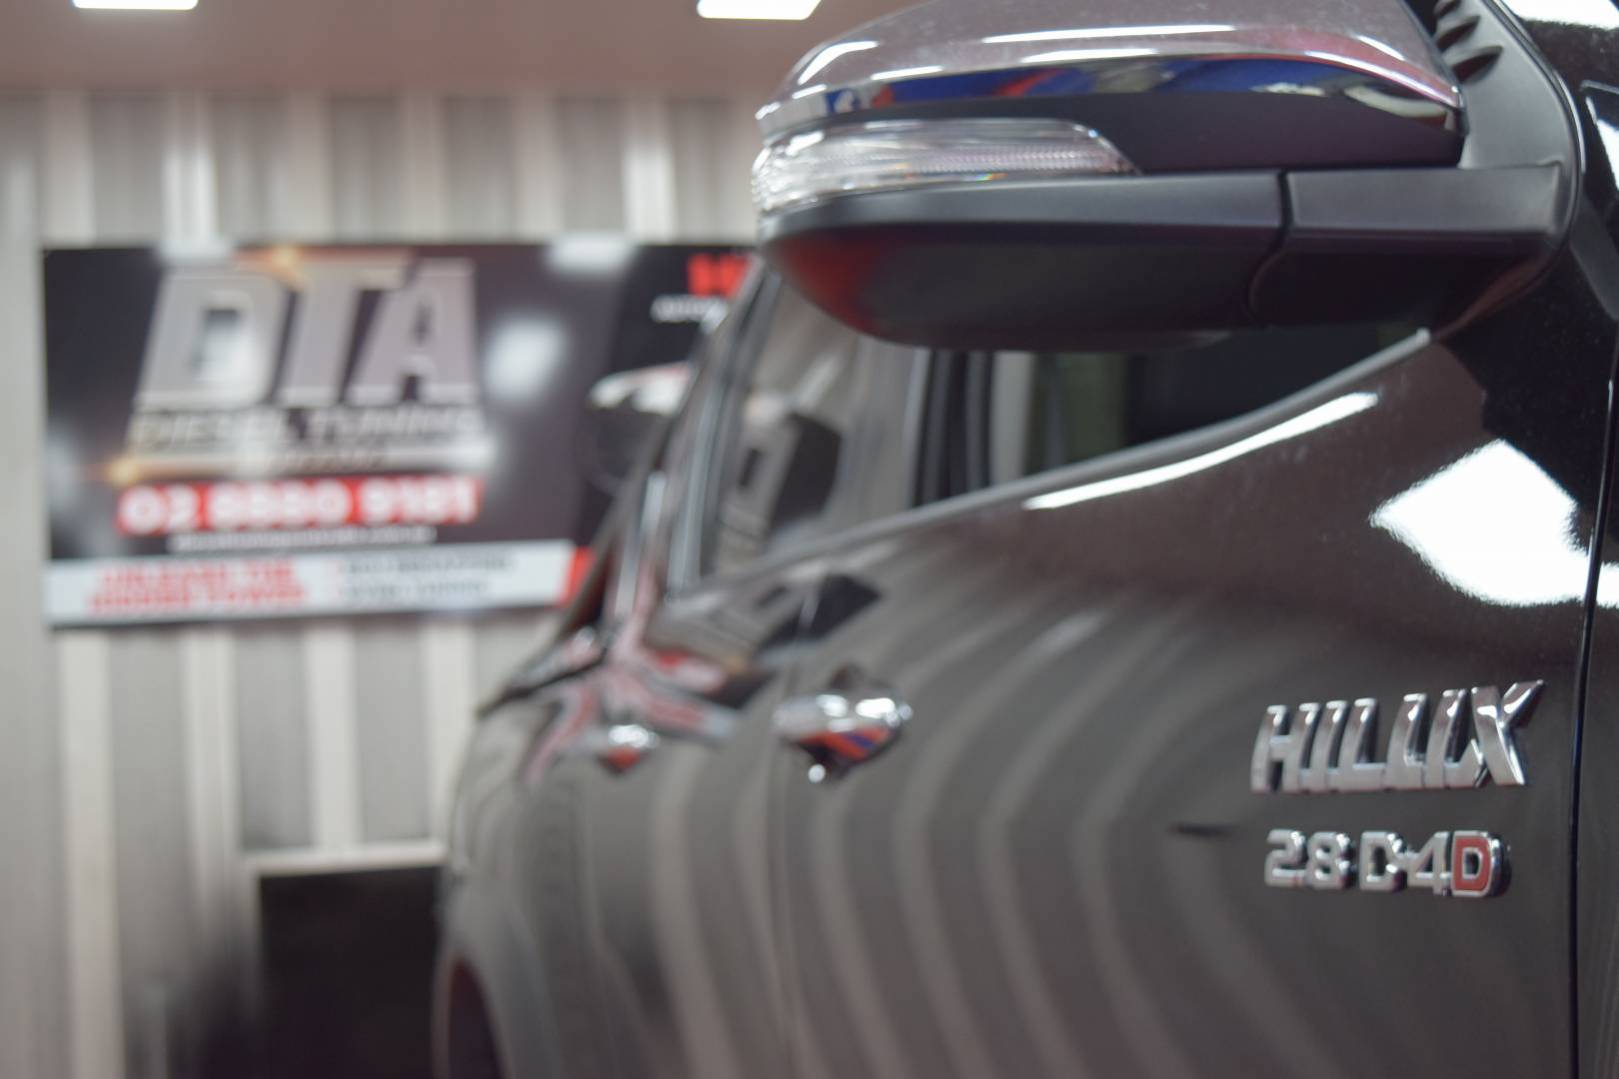 Toyota Hilux TRD 2017 2 8 dyno tuning remap - Diesel Tuning